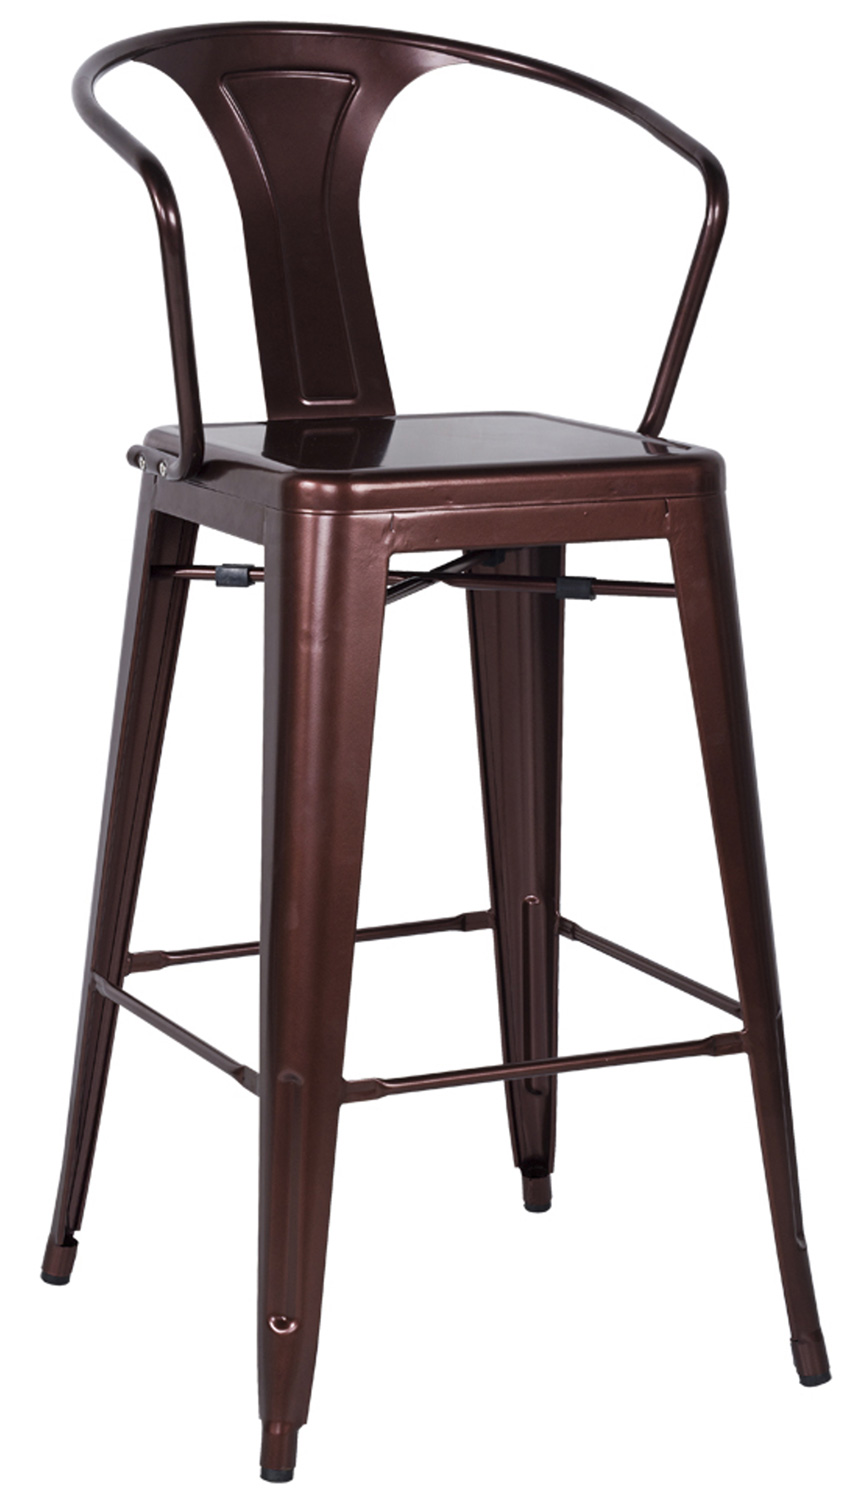 Chintaly Imports 8020 Galvanized Steel Bar Stool - Red Copper